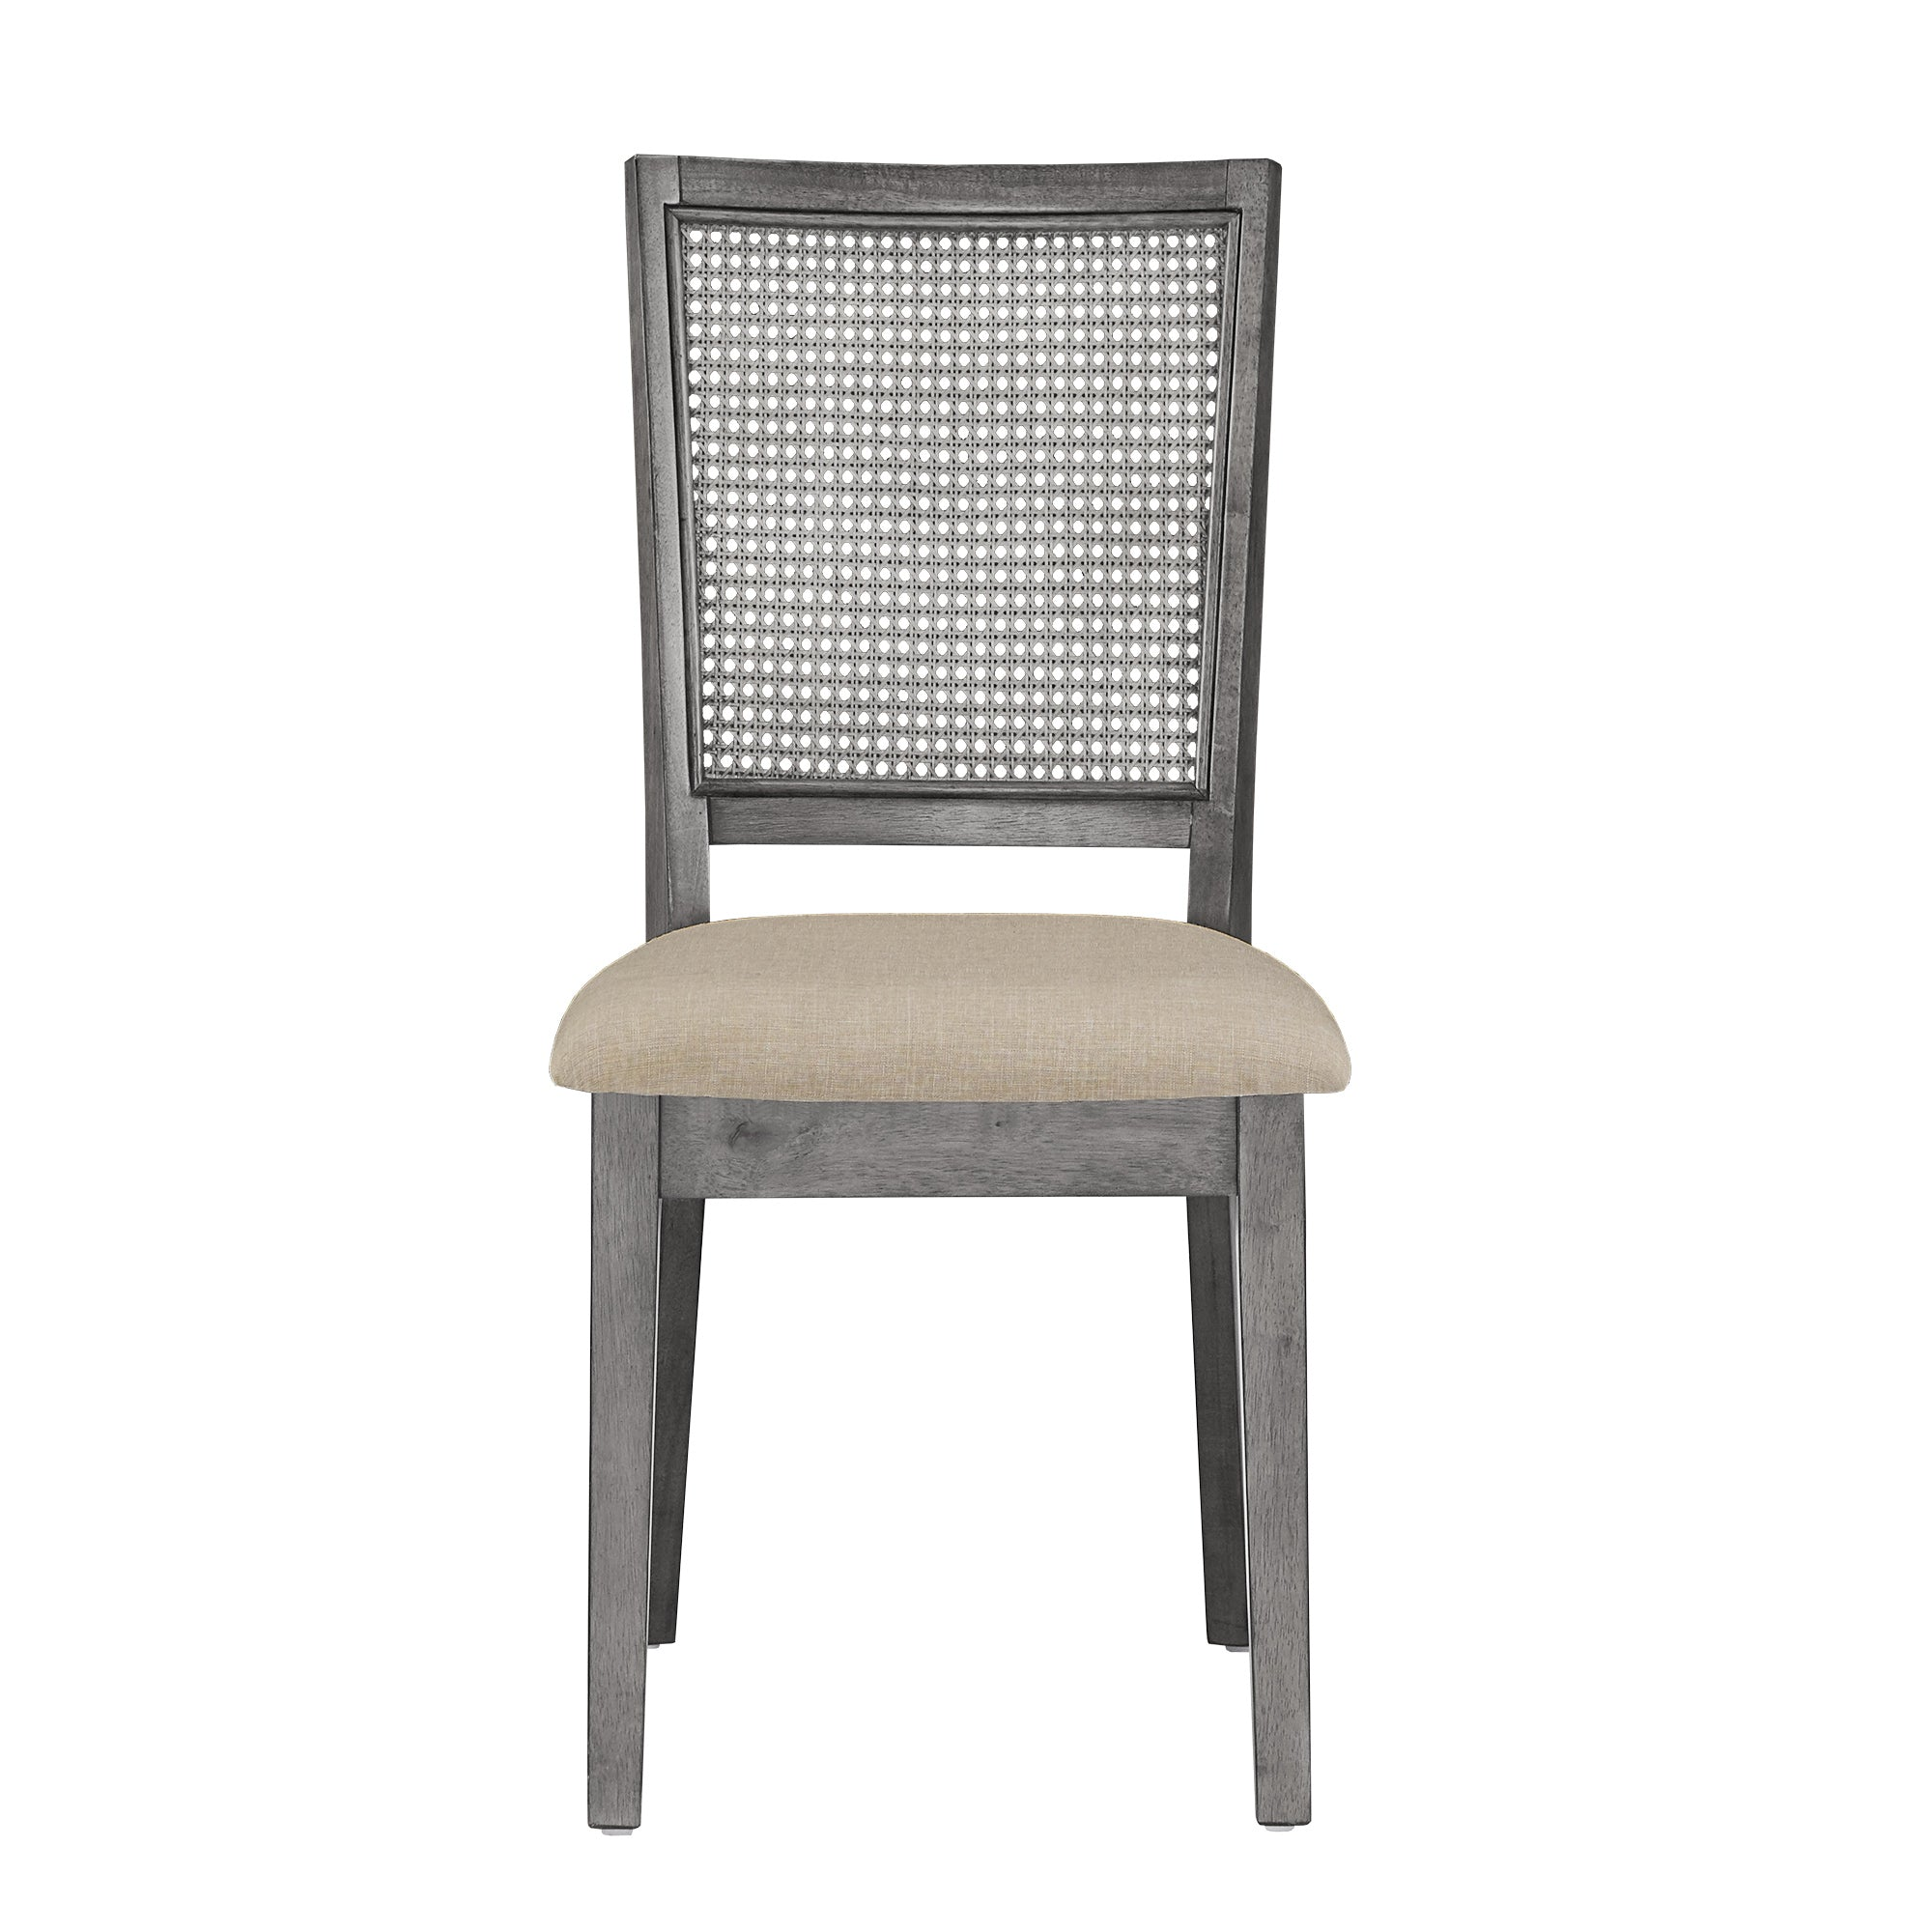 Antique Grey Beige Linen Rattan Back Dining Chairs (Set of 2)